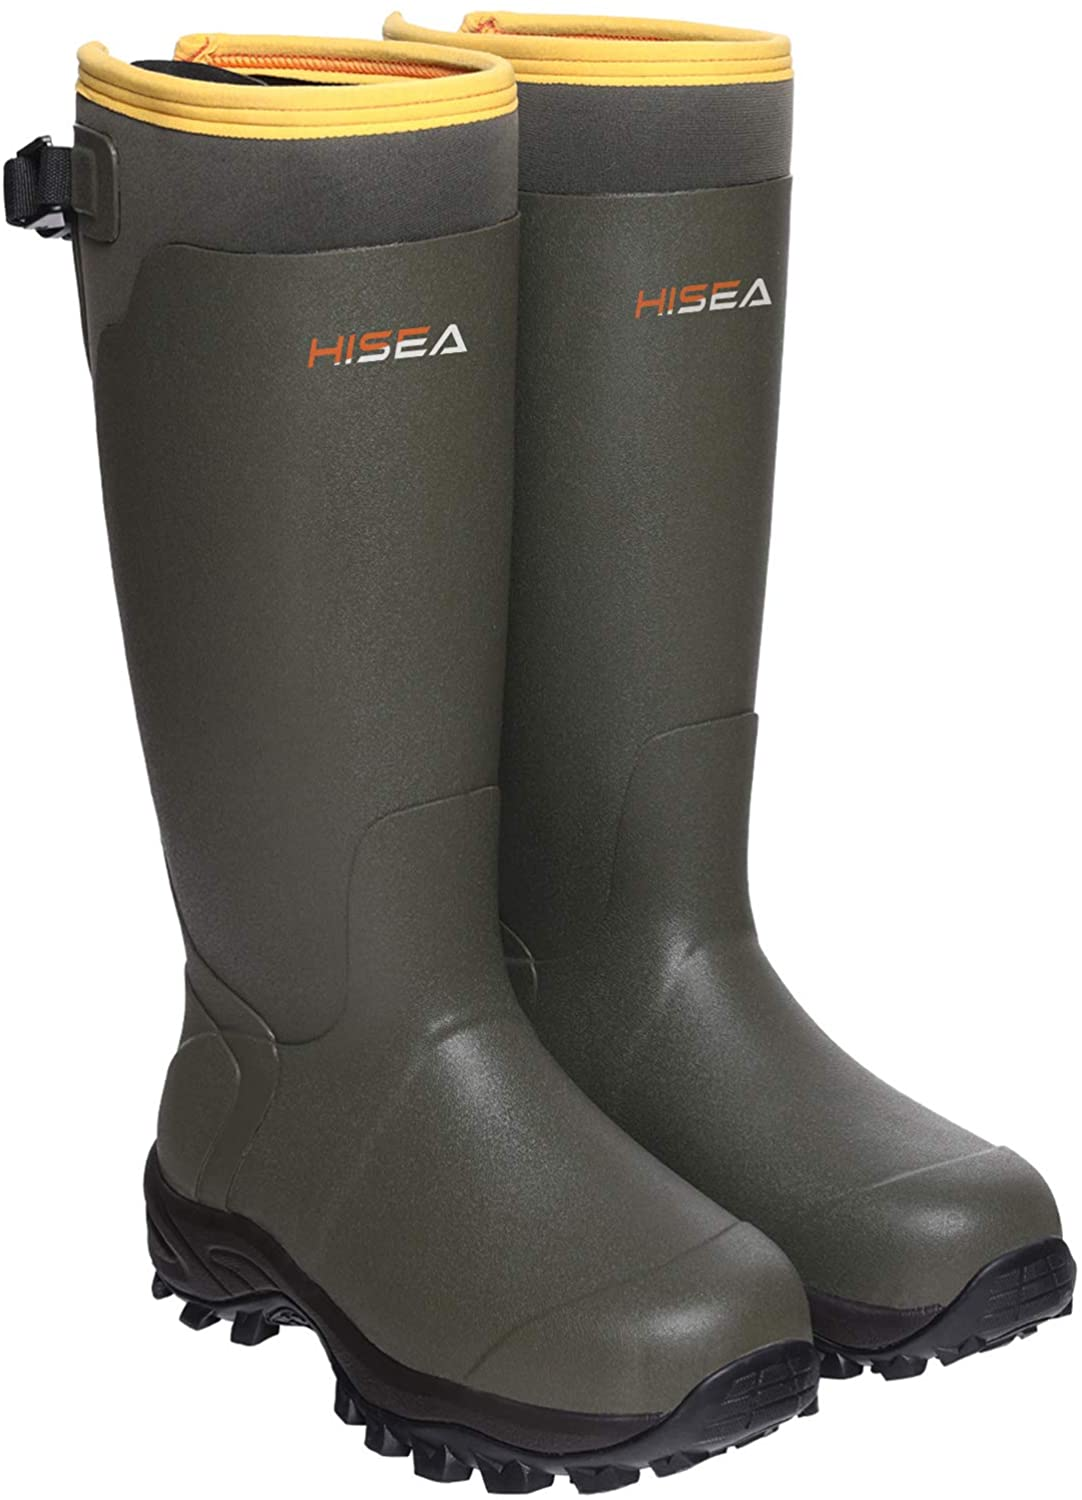 Hisea Apollo Basic Hunting Boots for Men Waterproof Insulated Rubber Boots Rain Boots Neoprene Mens Boots Dark Green